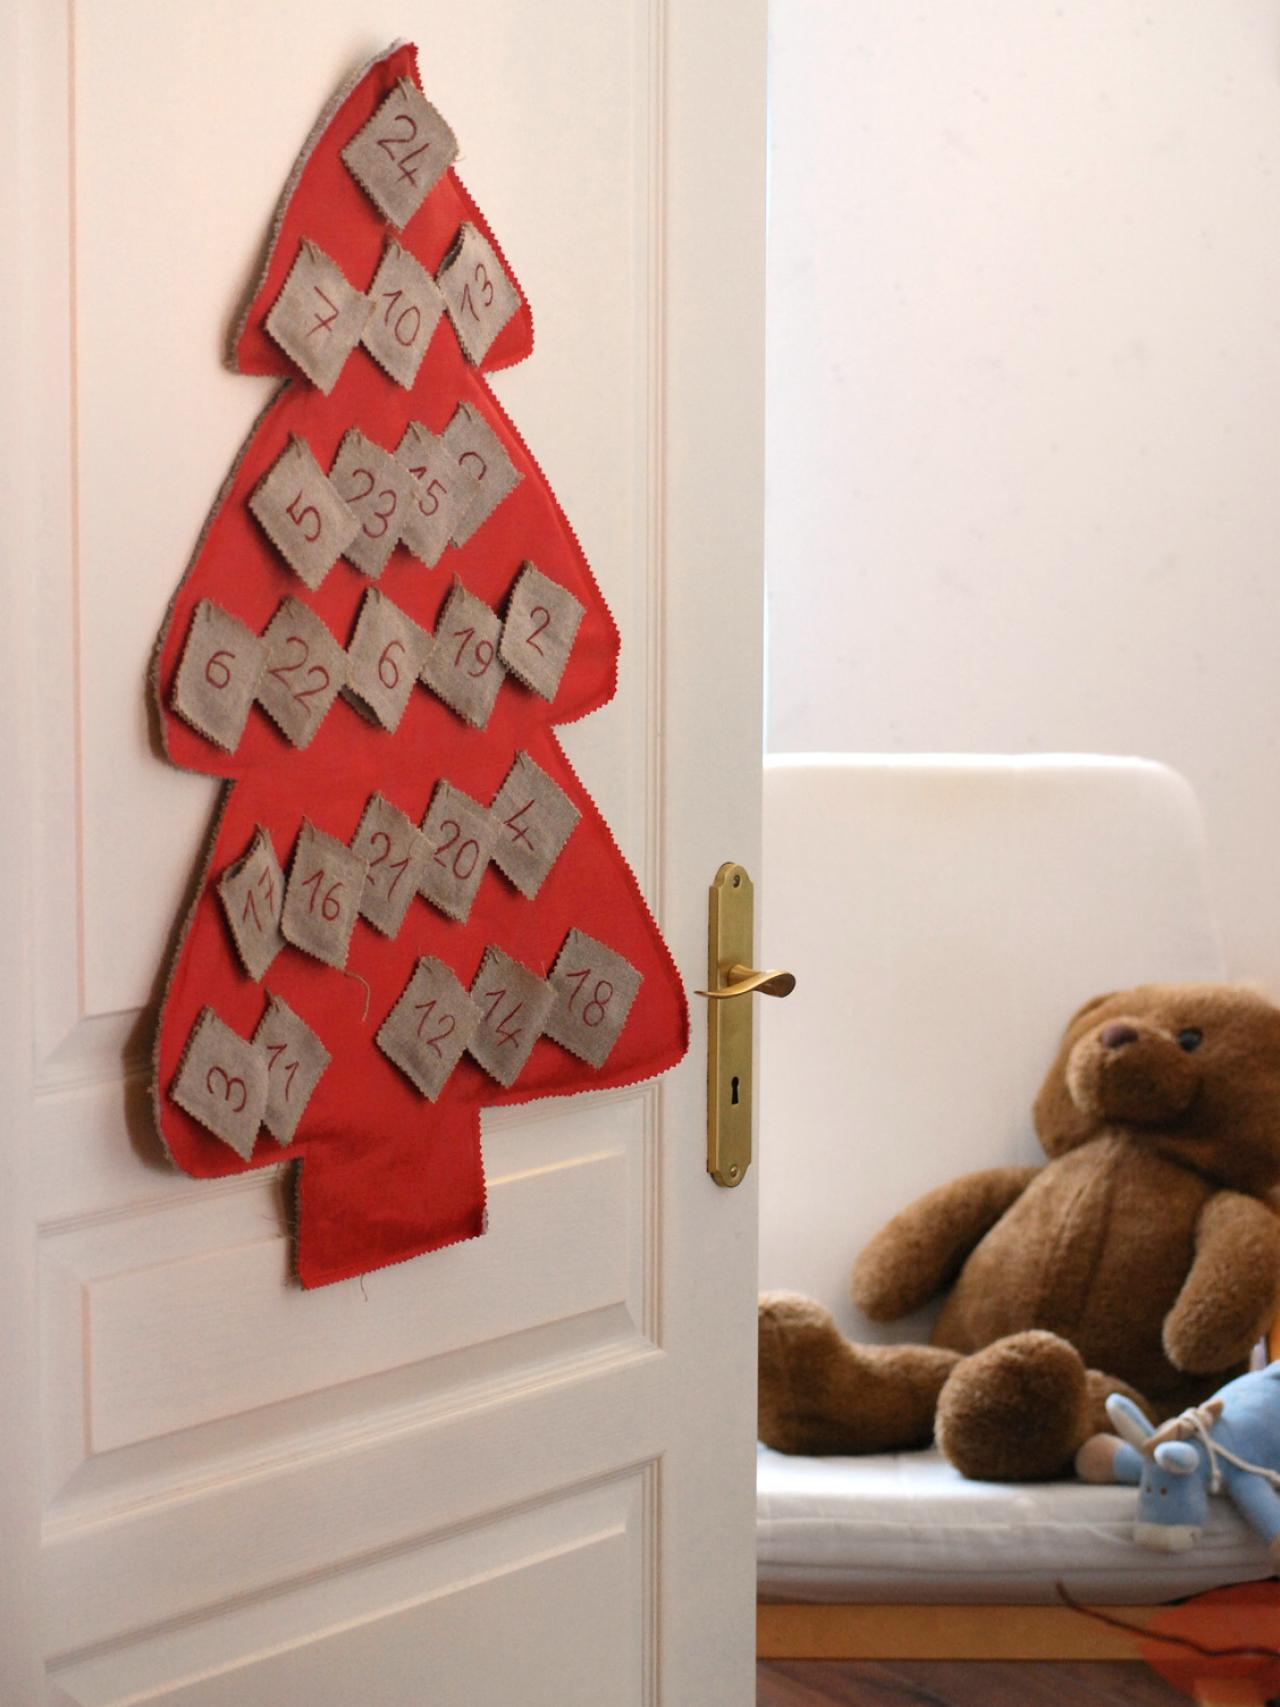 15 Festive Entryway Decorating Ideas For The Holidays